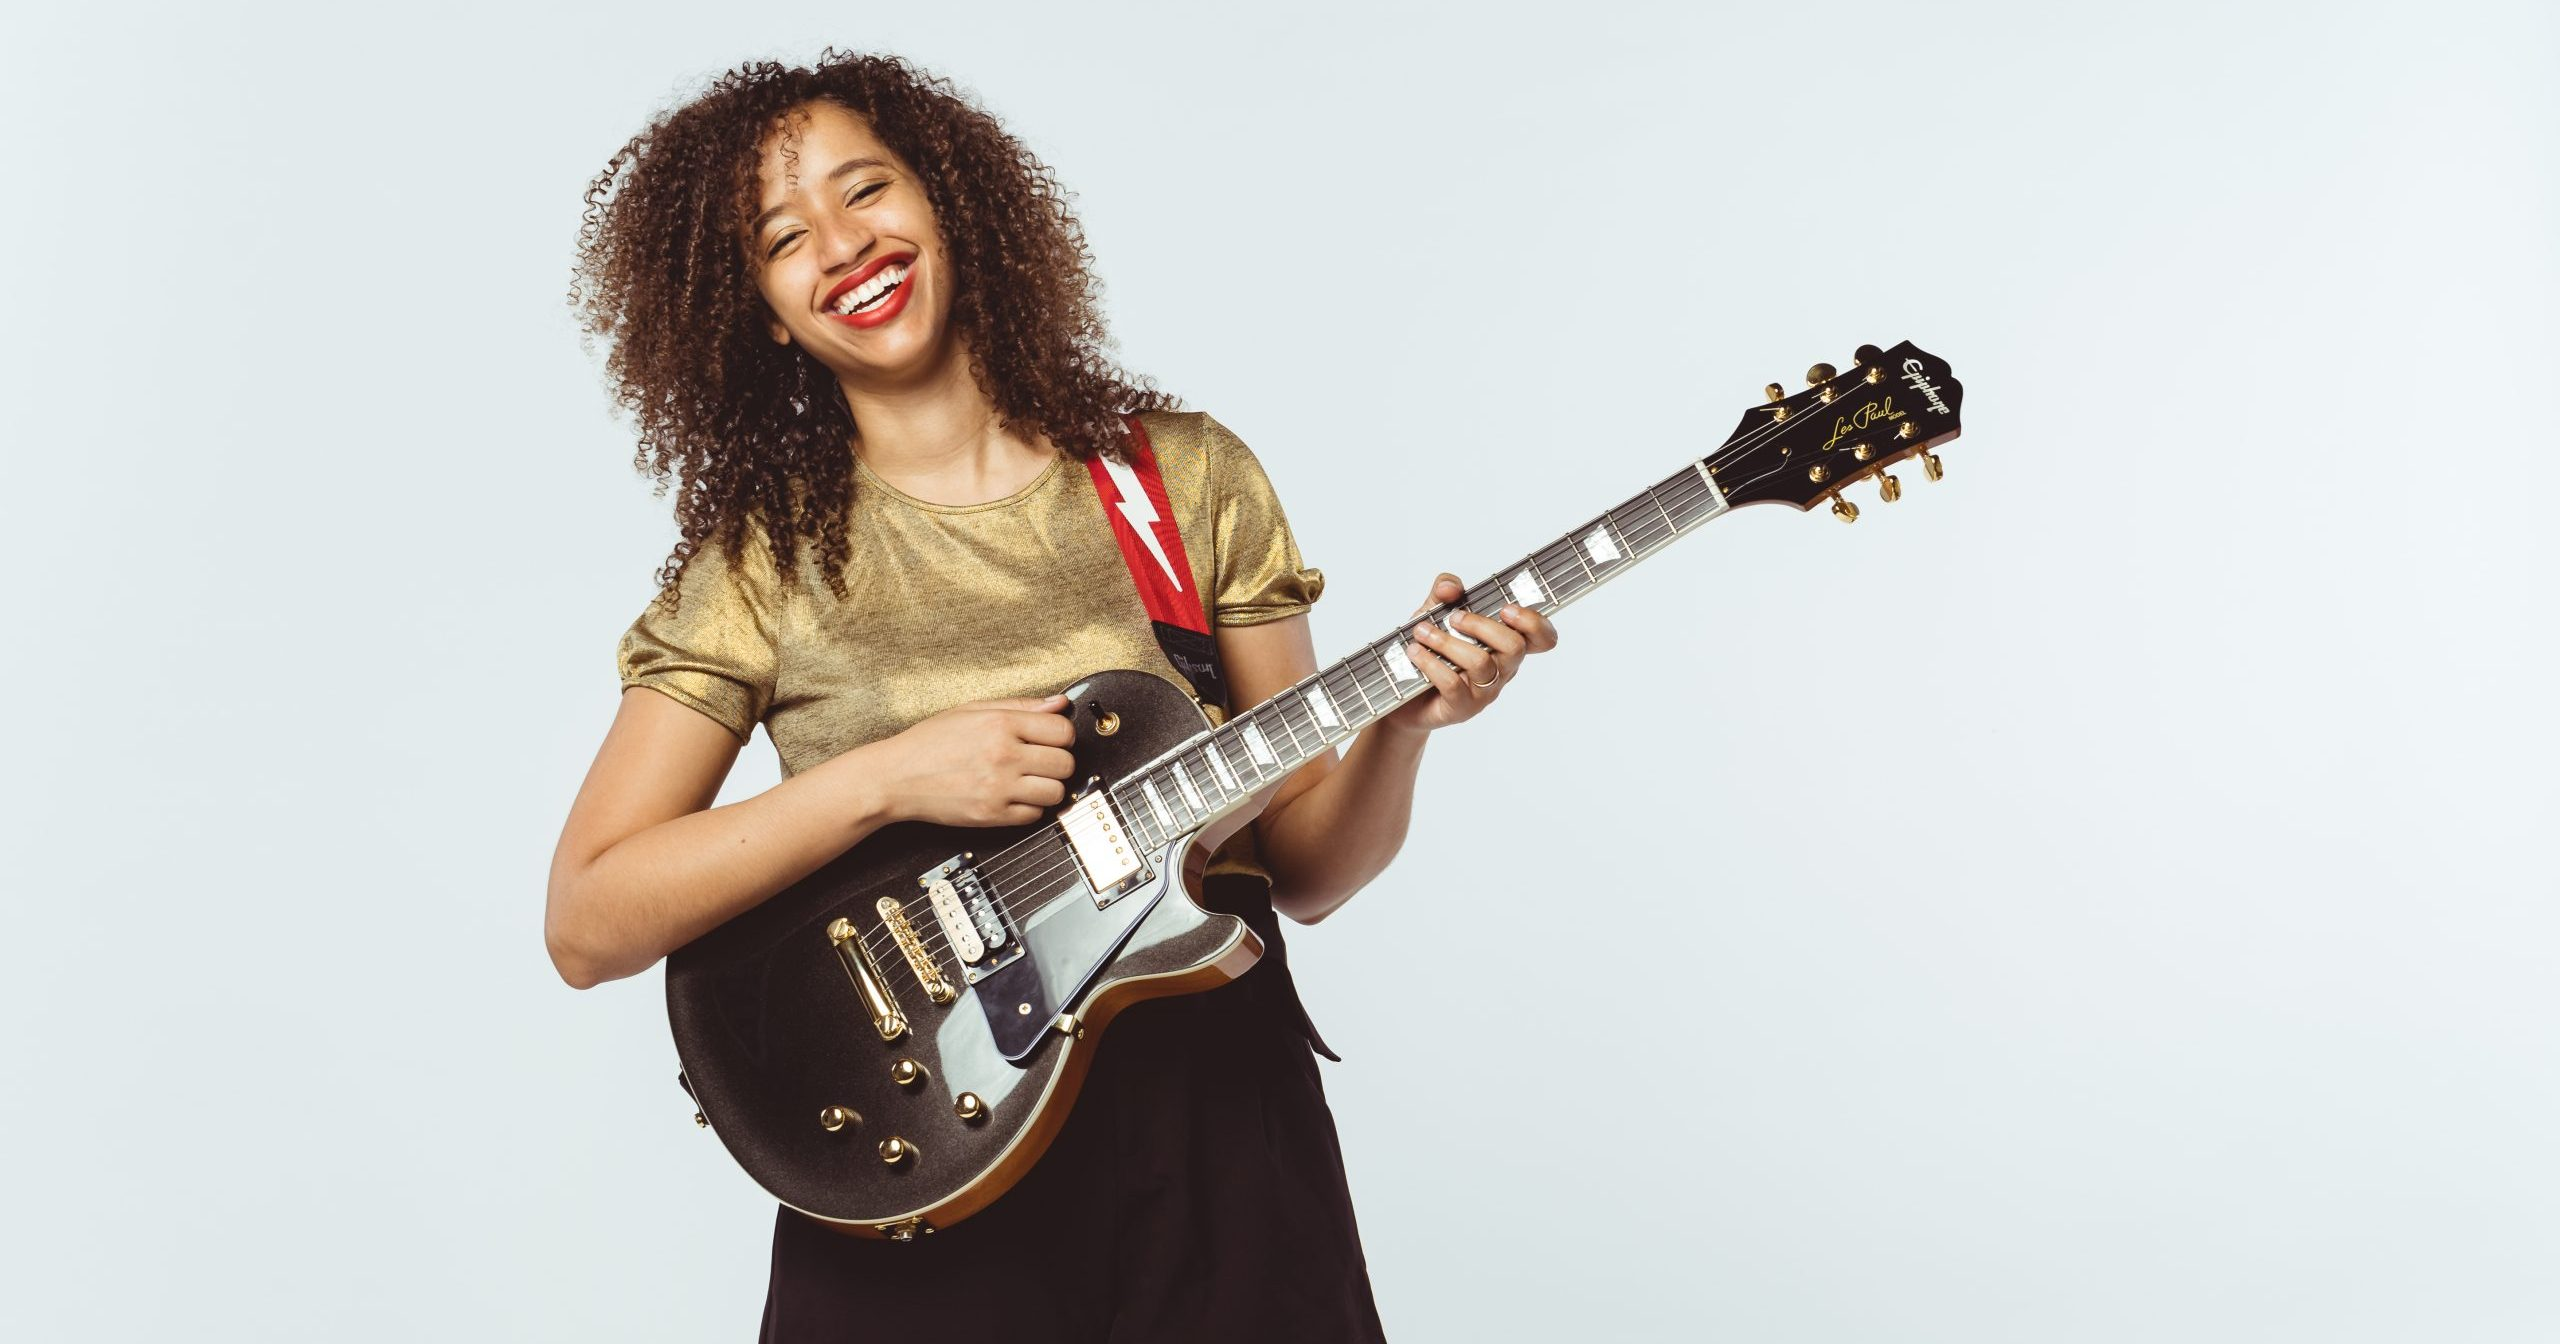 Guitarist Jackie Venson Charges Down a Path of Joy, Vulnerability, and Shredding